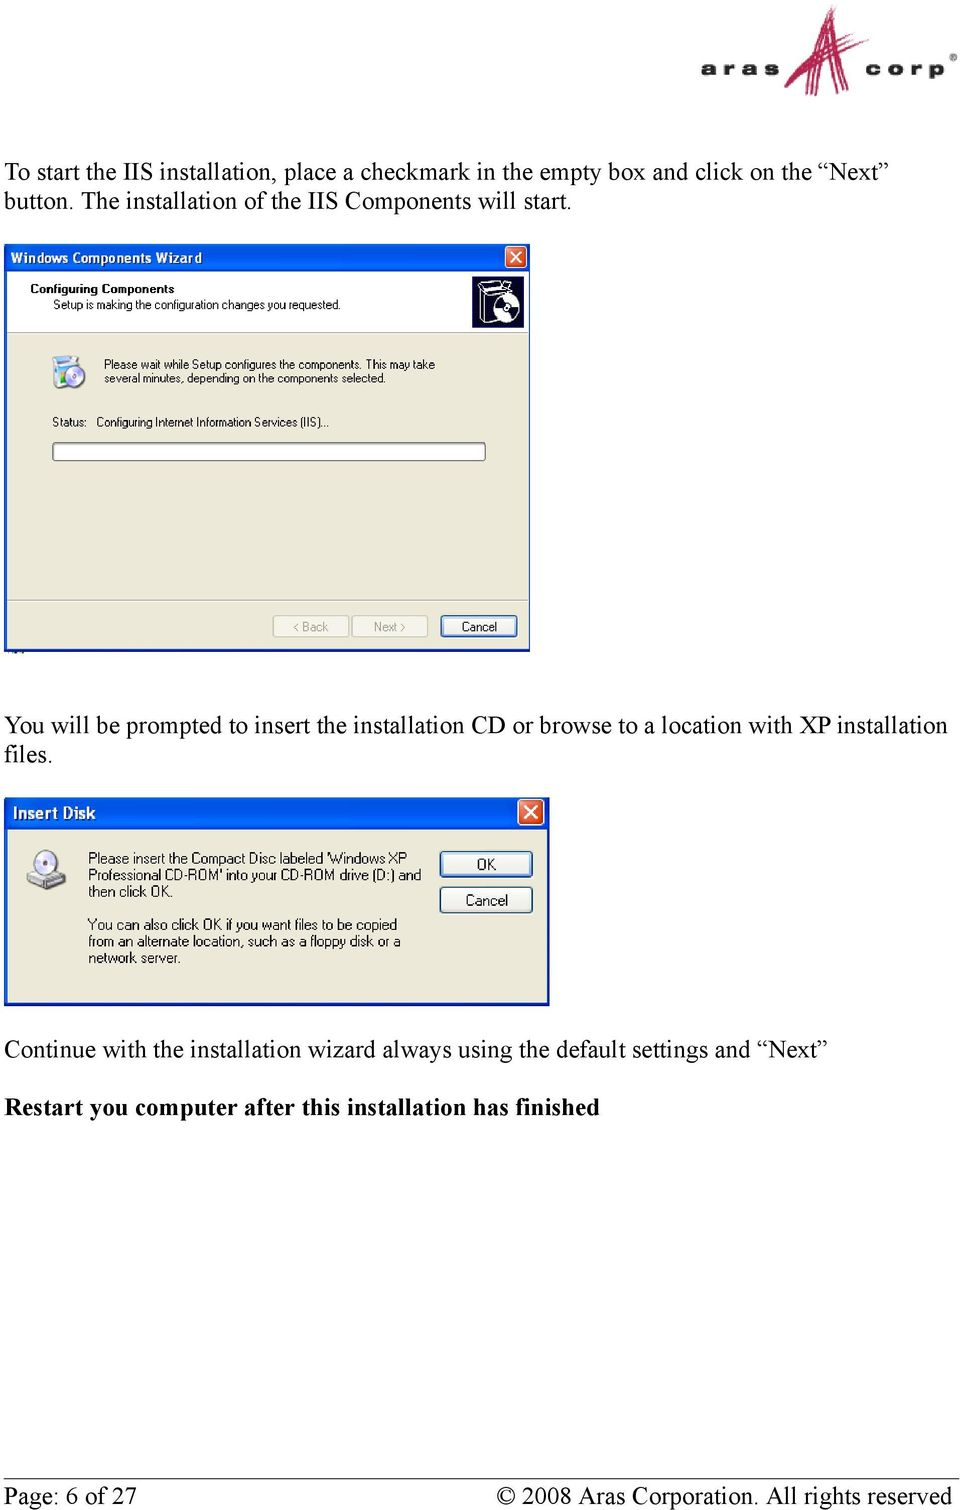 You will be prompted to insert the installation CD or browse to a location with XP installation